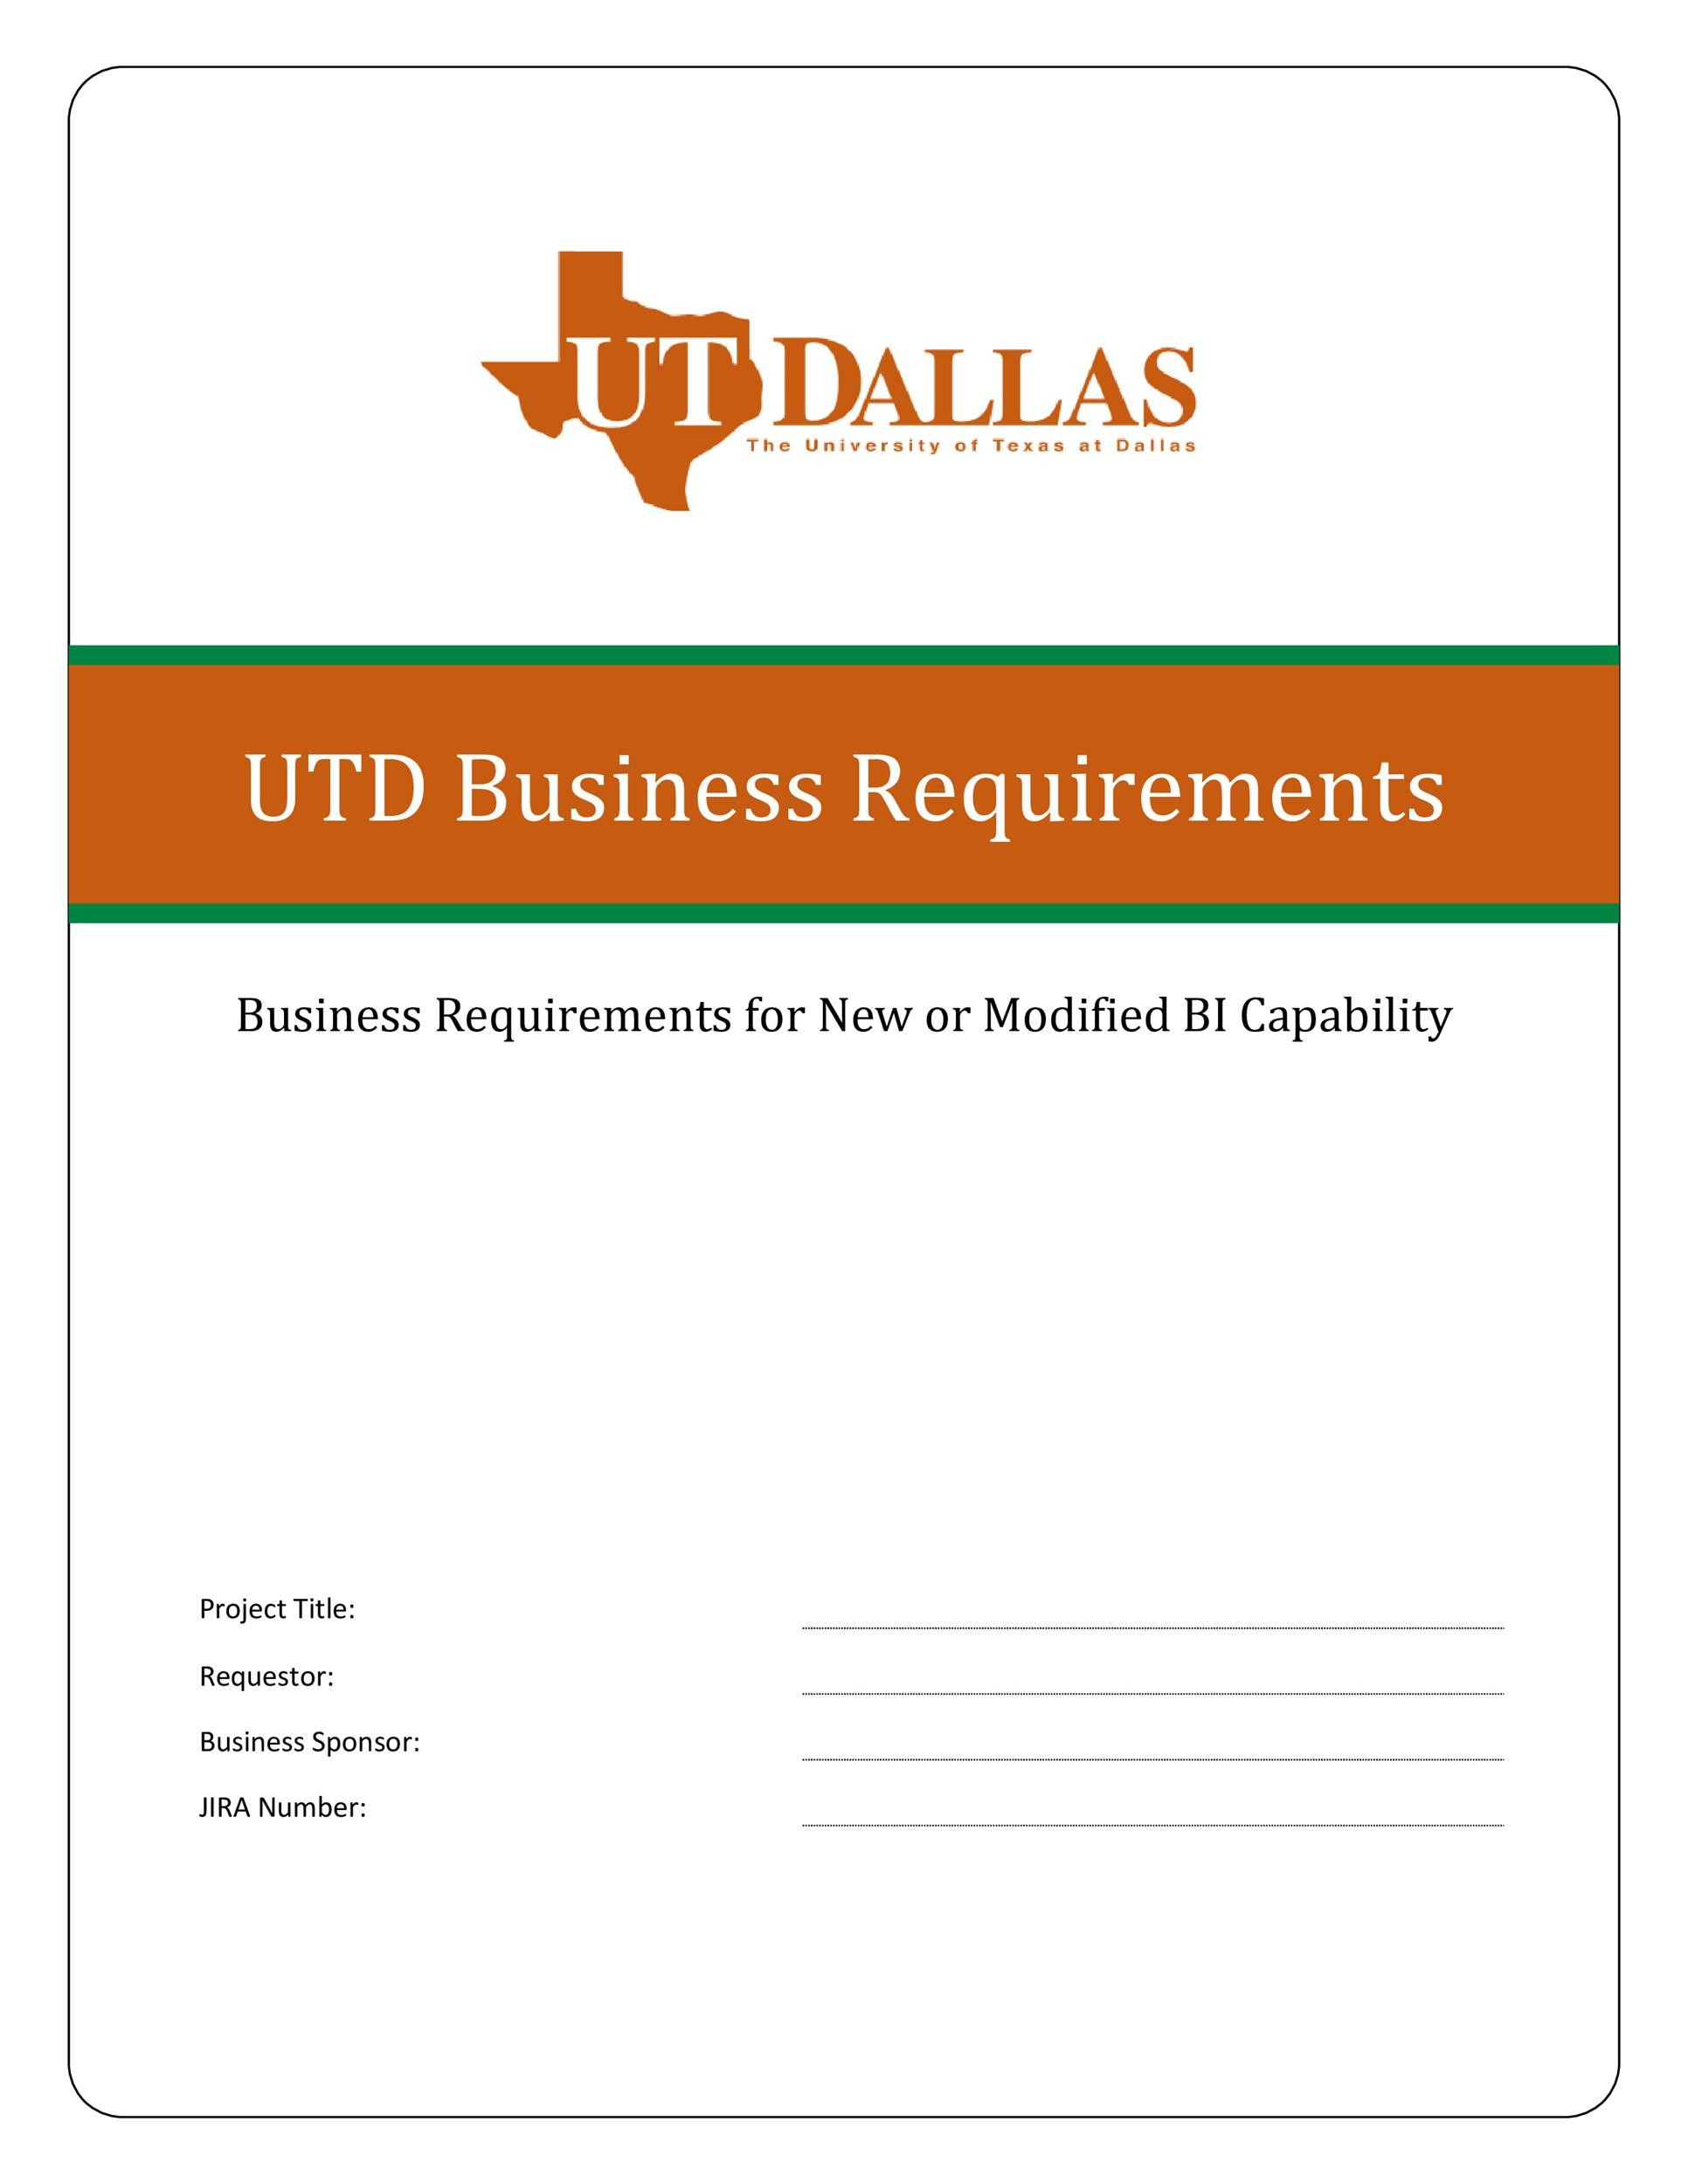 Business Requirements Document Template In Word And Pdf Formats Page